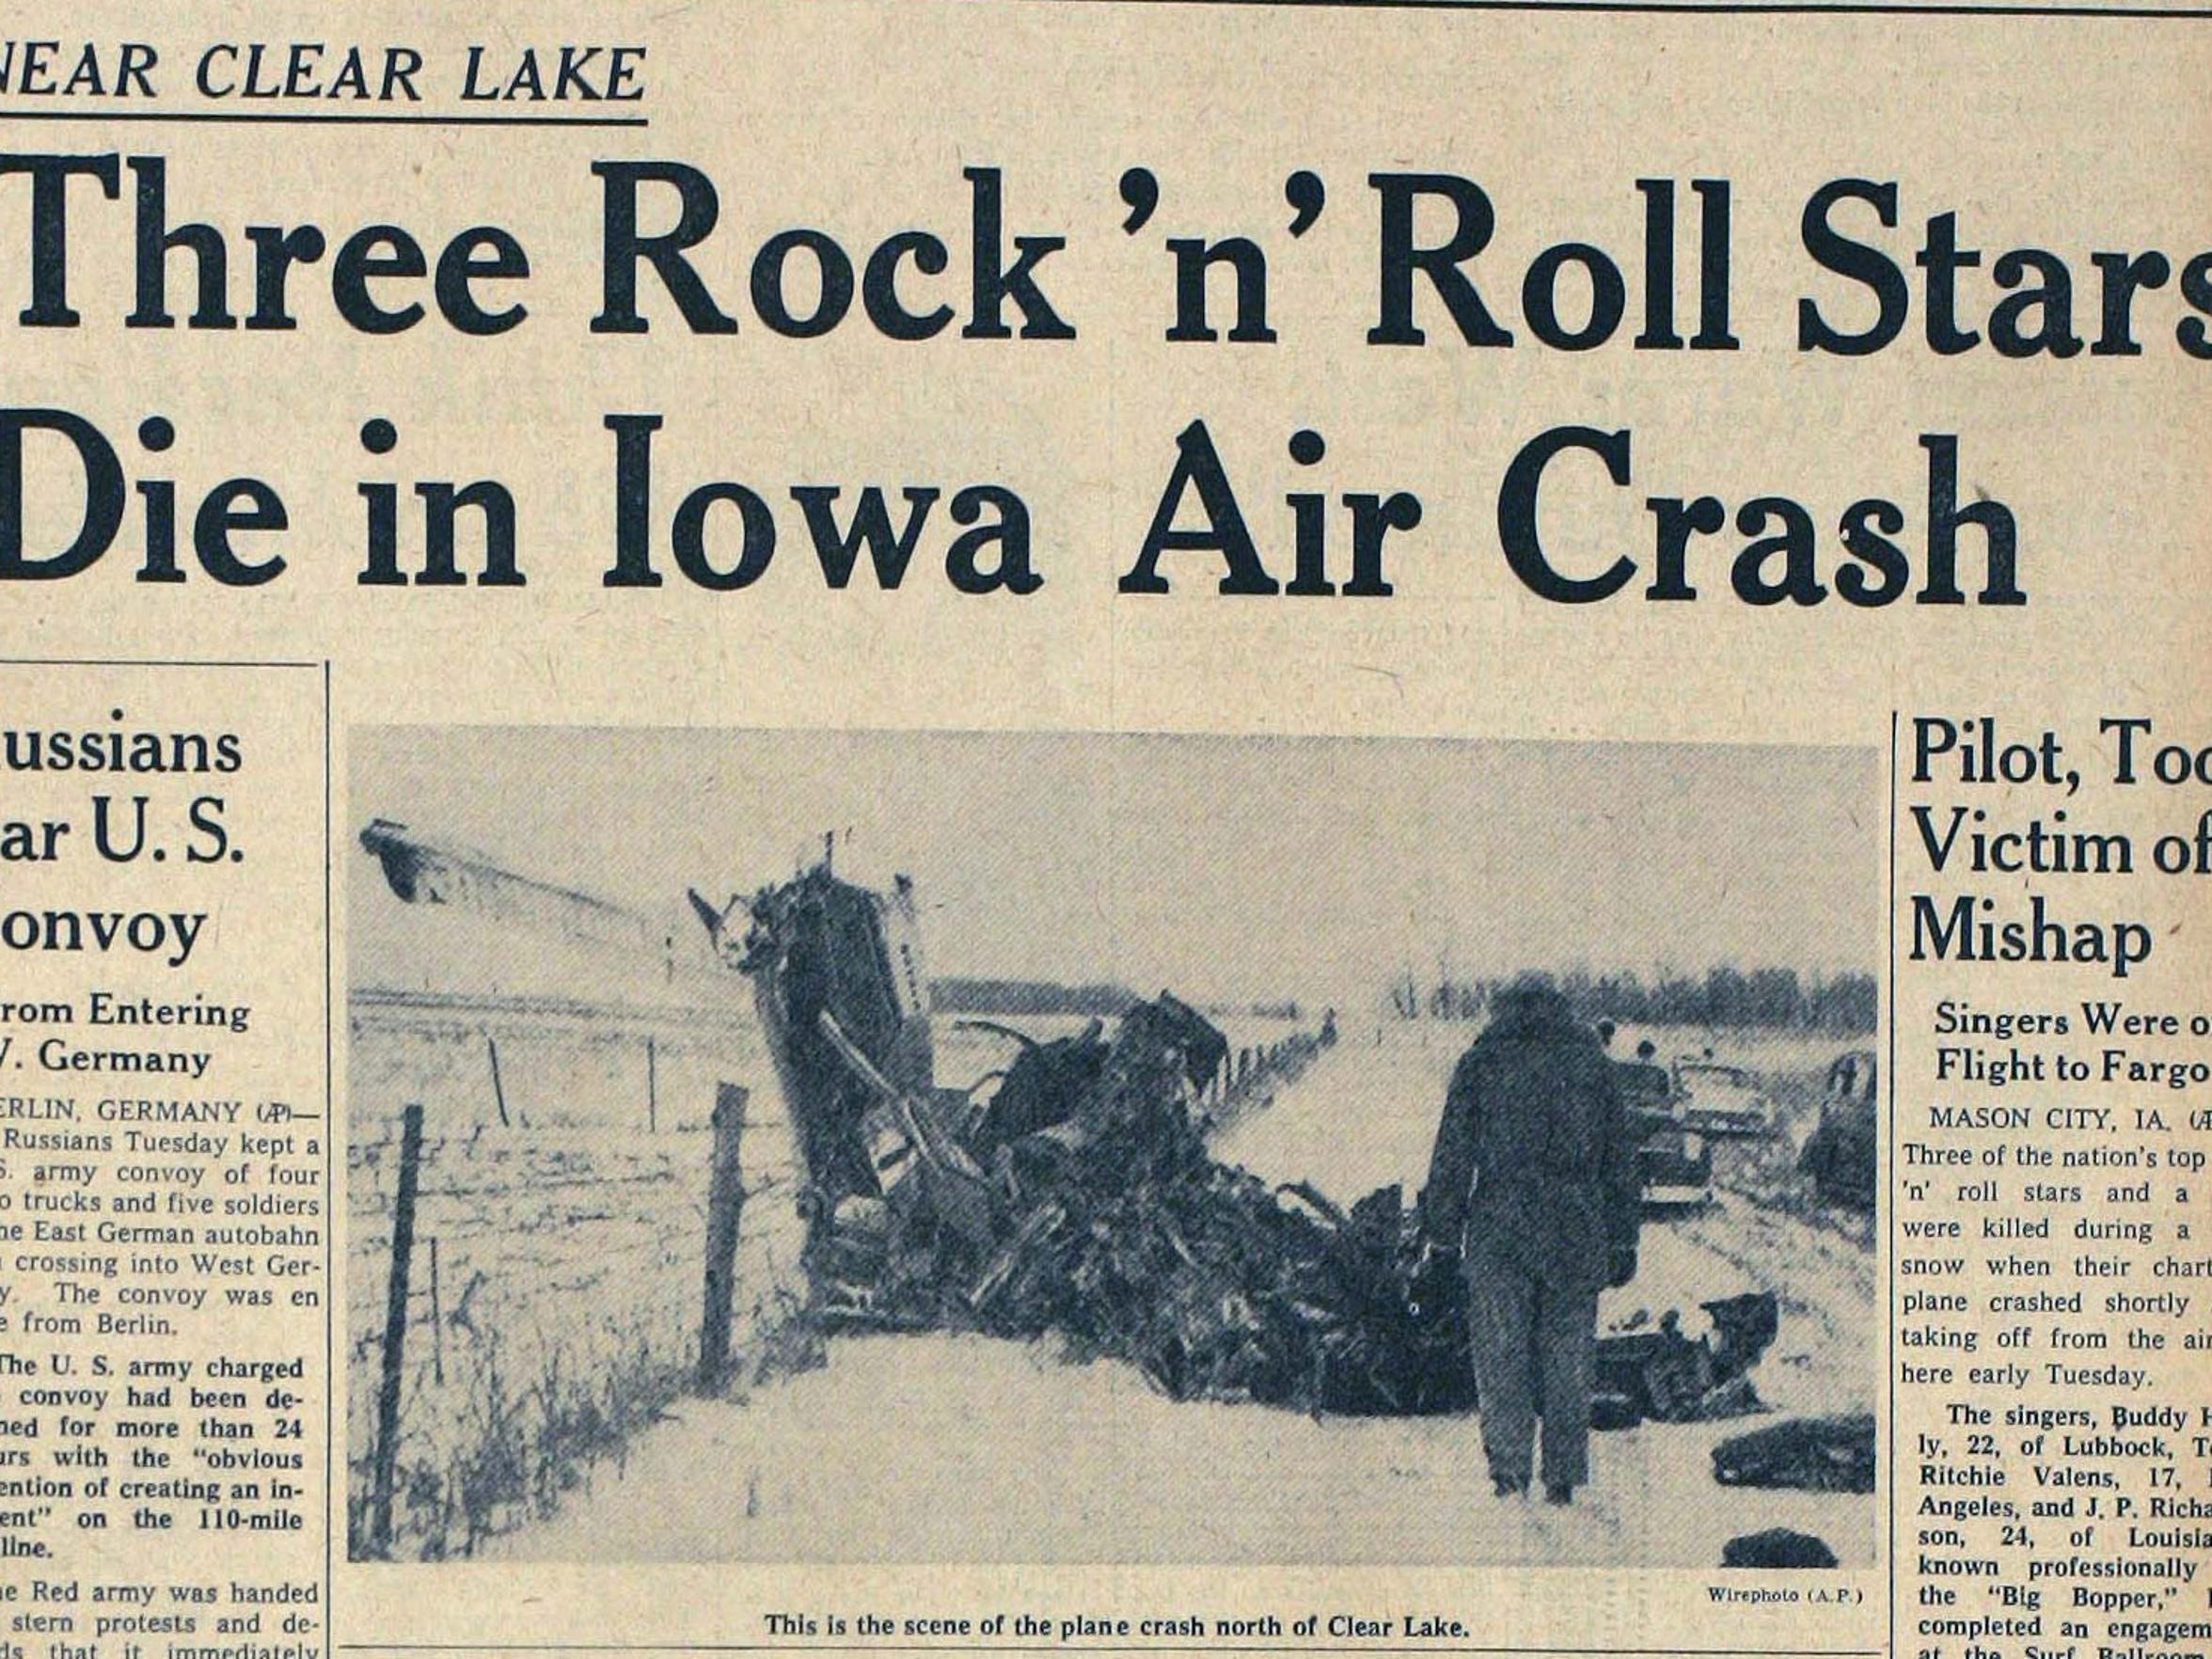 The Des Moines Tribune's front page from Feb 3, 1959, with coverage of the plane crash.